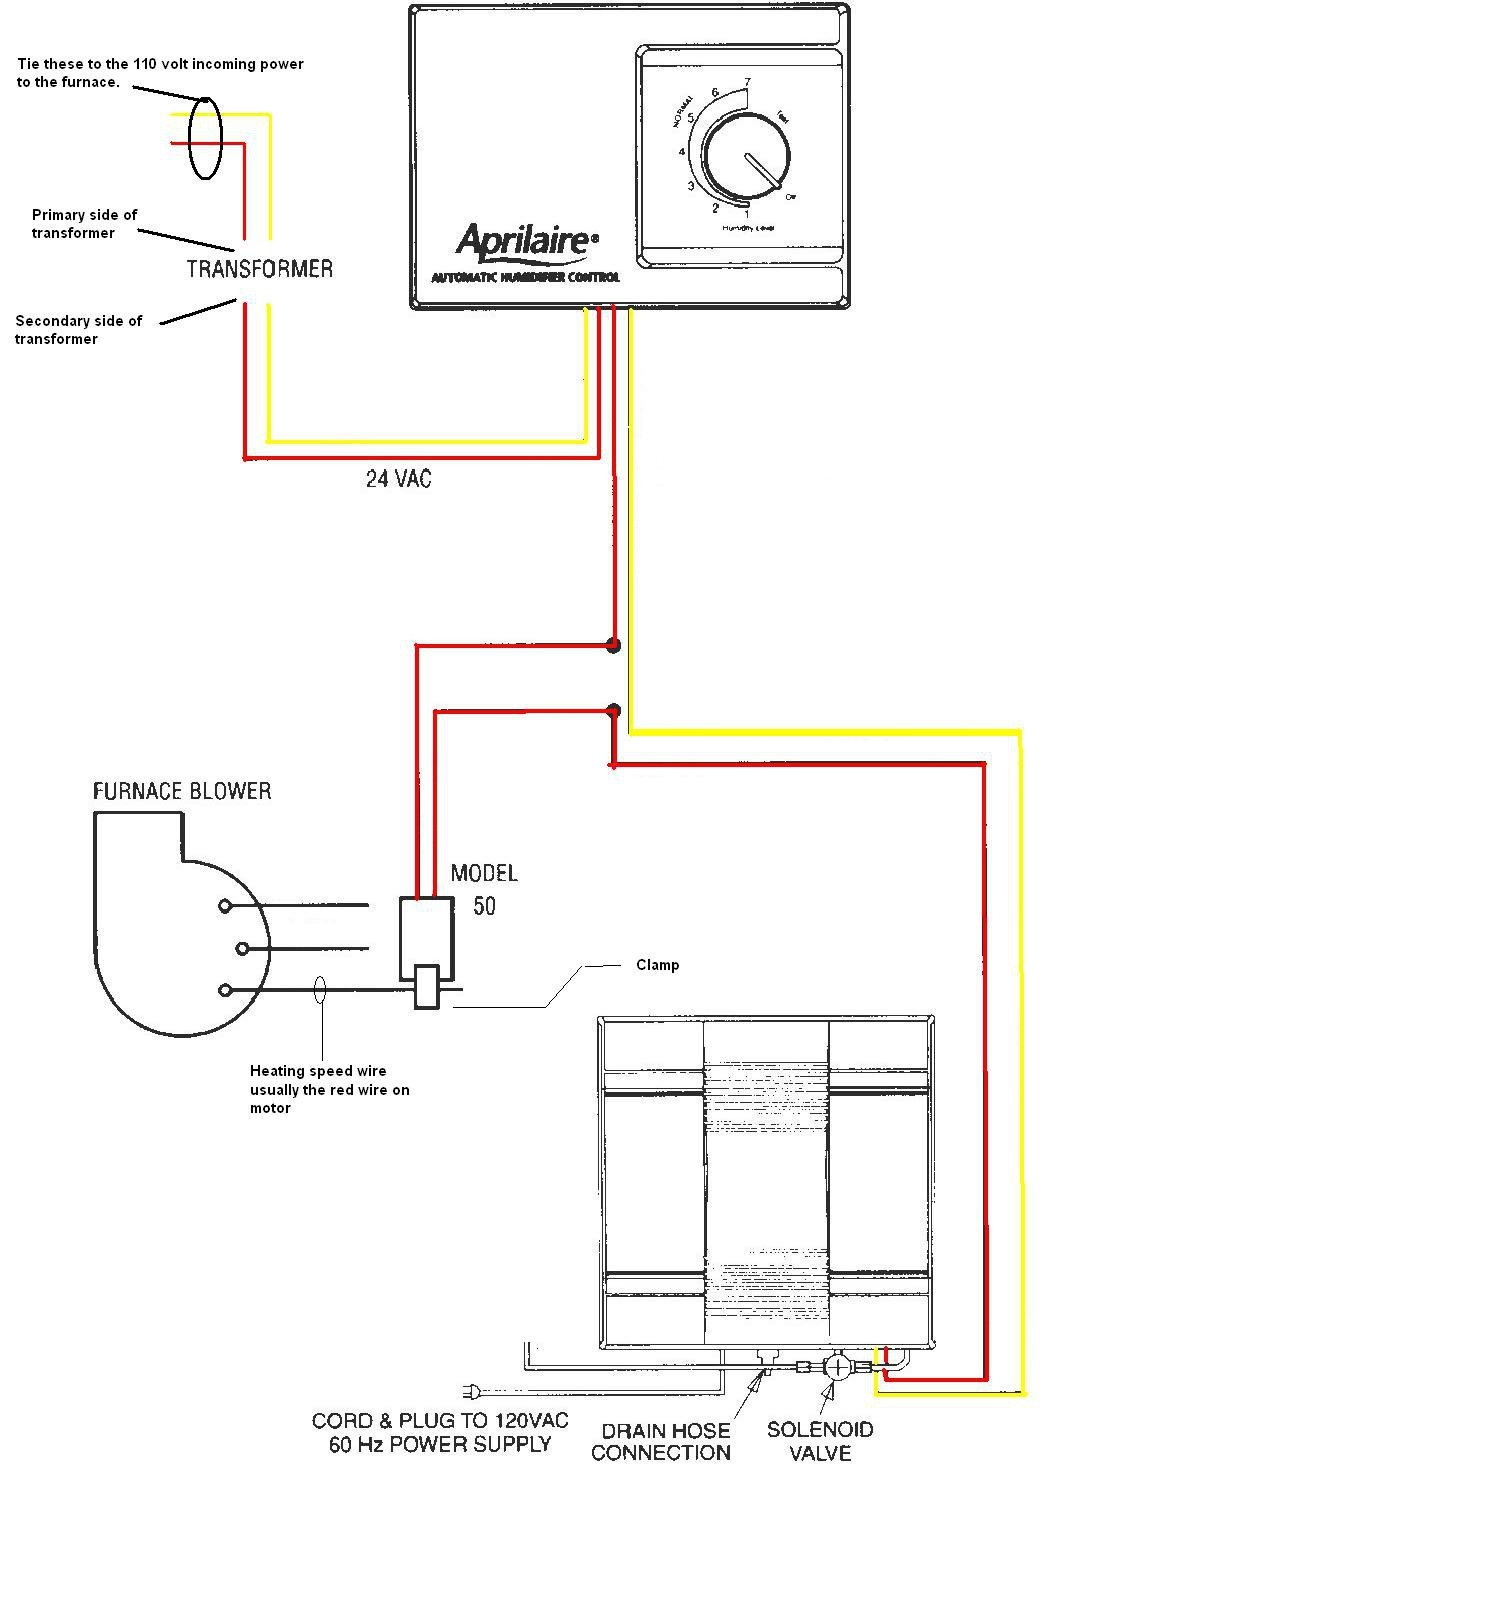 honeywell power humidifier wiring diagram Collection-Wiring Diagram Detail Name honeywell power humidifier 11-h